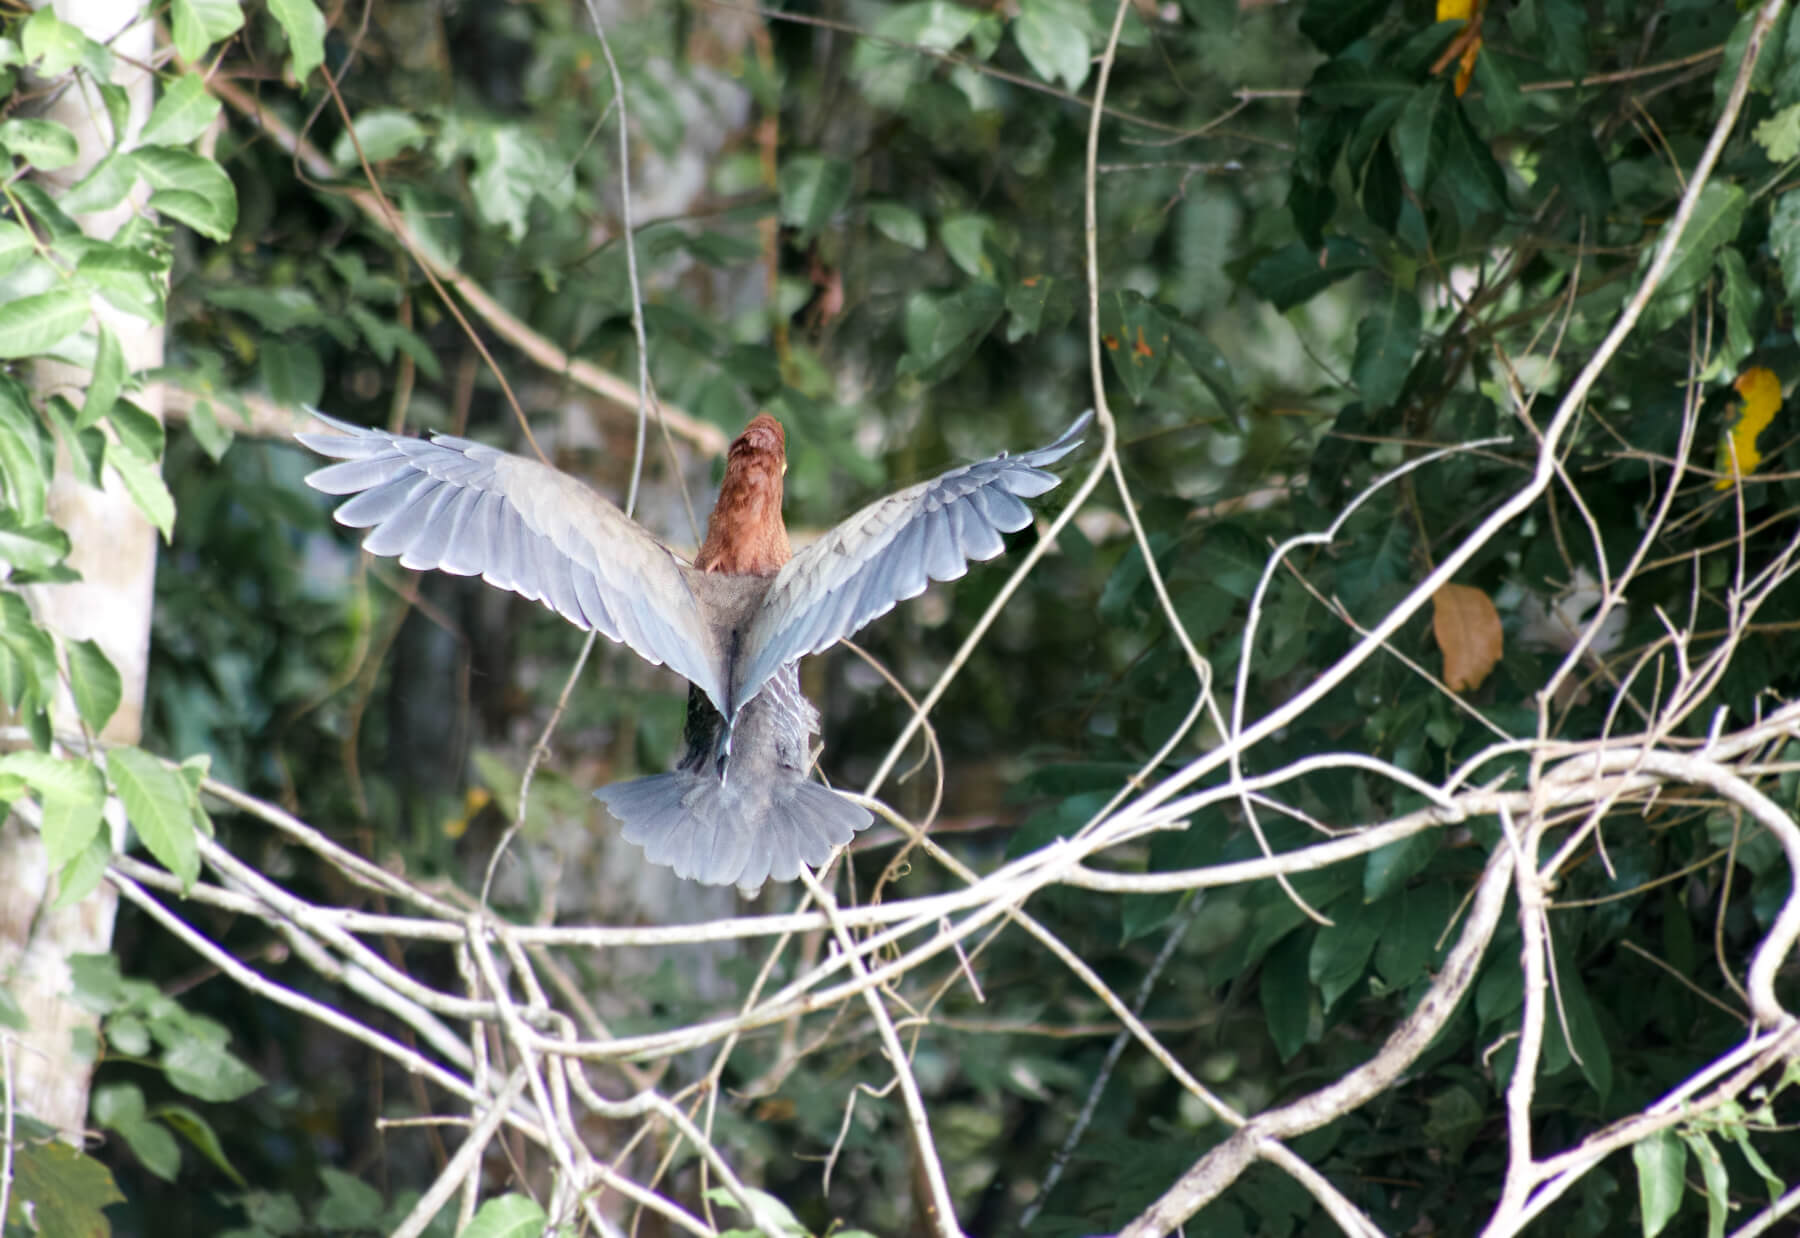 The back of an bird with an orange head and black wings as it is about to land on a branch